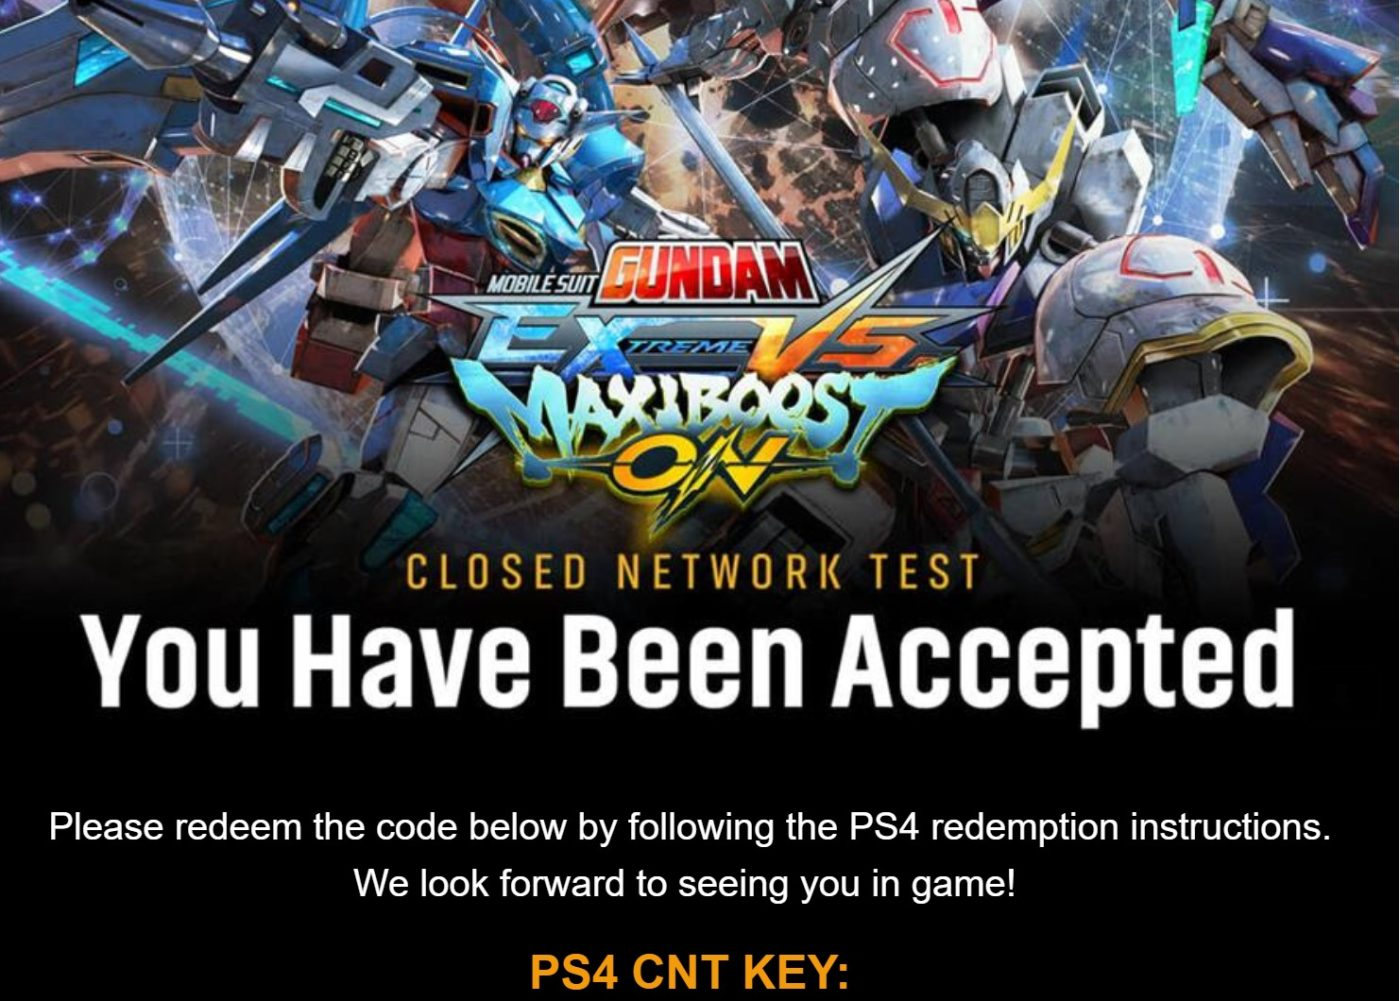 Mobile Suit Gundam Extreme VS. Maxiboost ON Beta, Mobile Suit Gundam Extreme VS. Maxiboost ON Beta Invites Are Going out, MP1st, MP1st